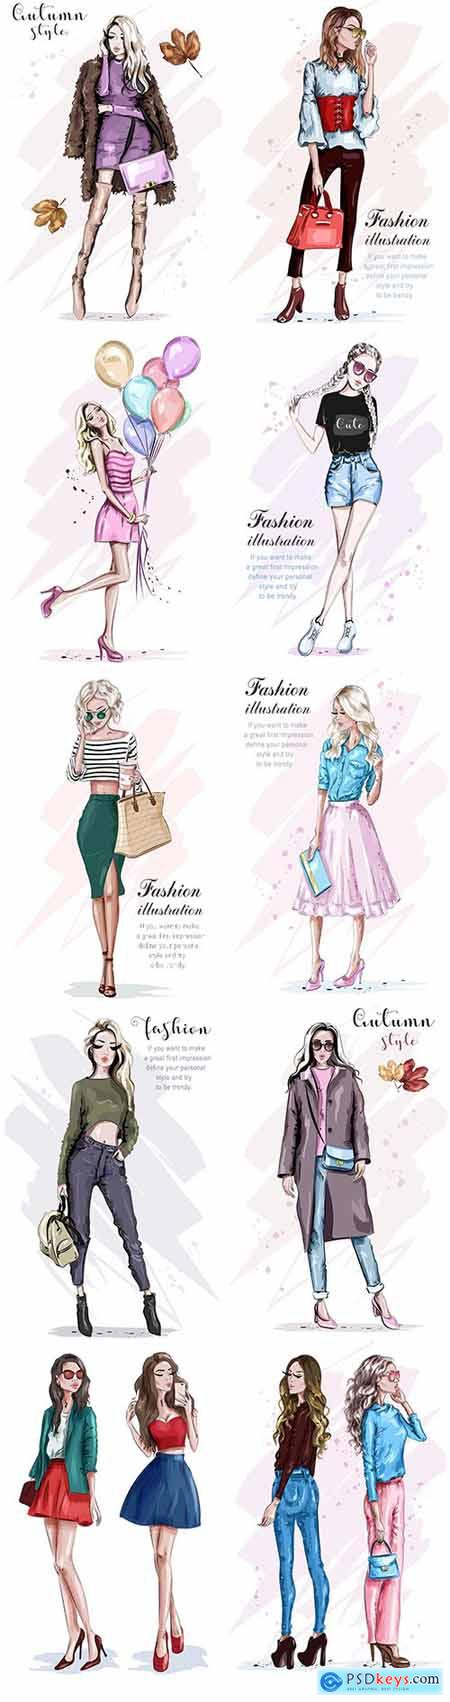 Sketch beautiful and stylish young woman painted illustration